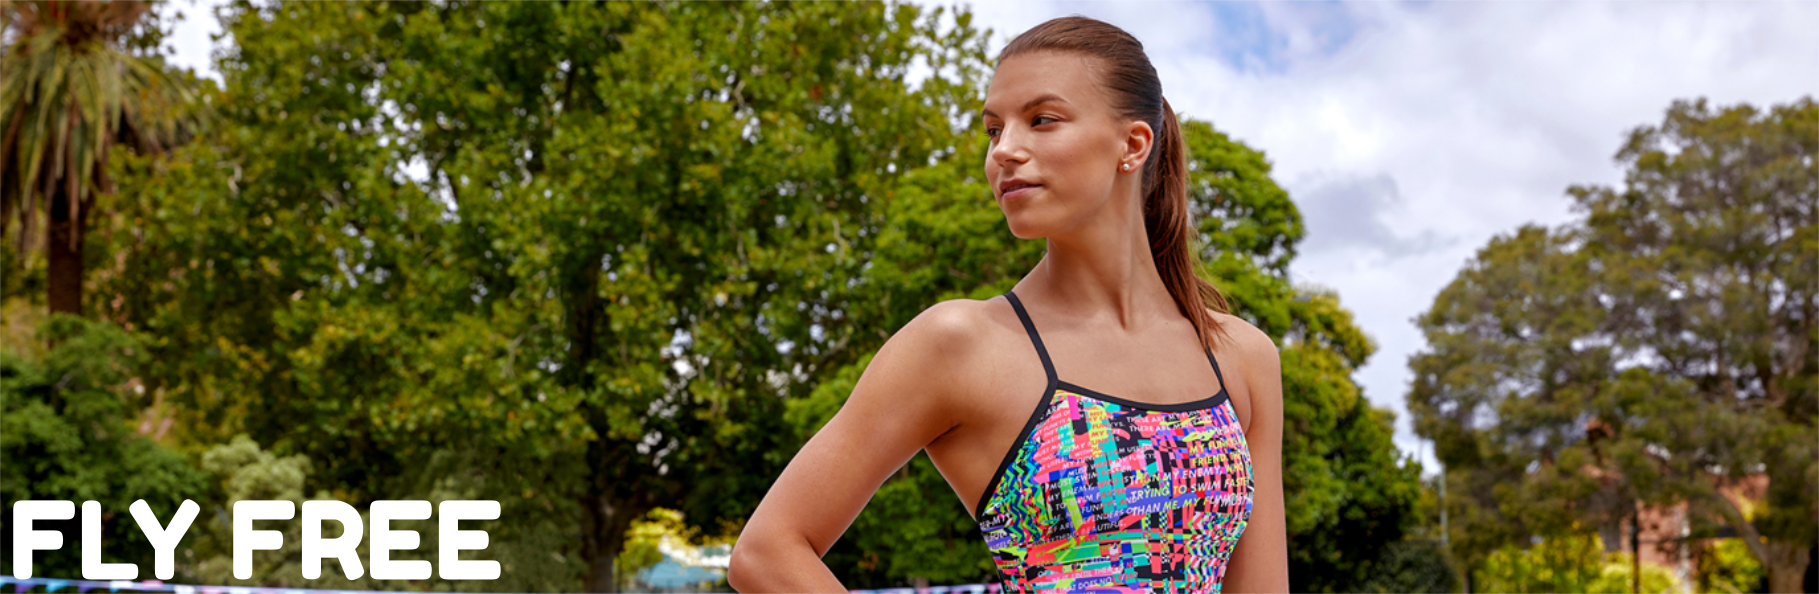 Funkita & Funky Trunks Fly Free Collection Banner